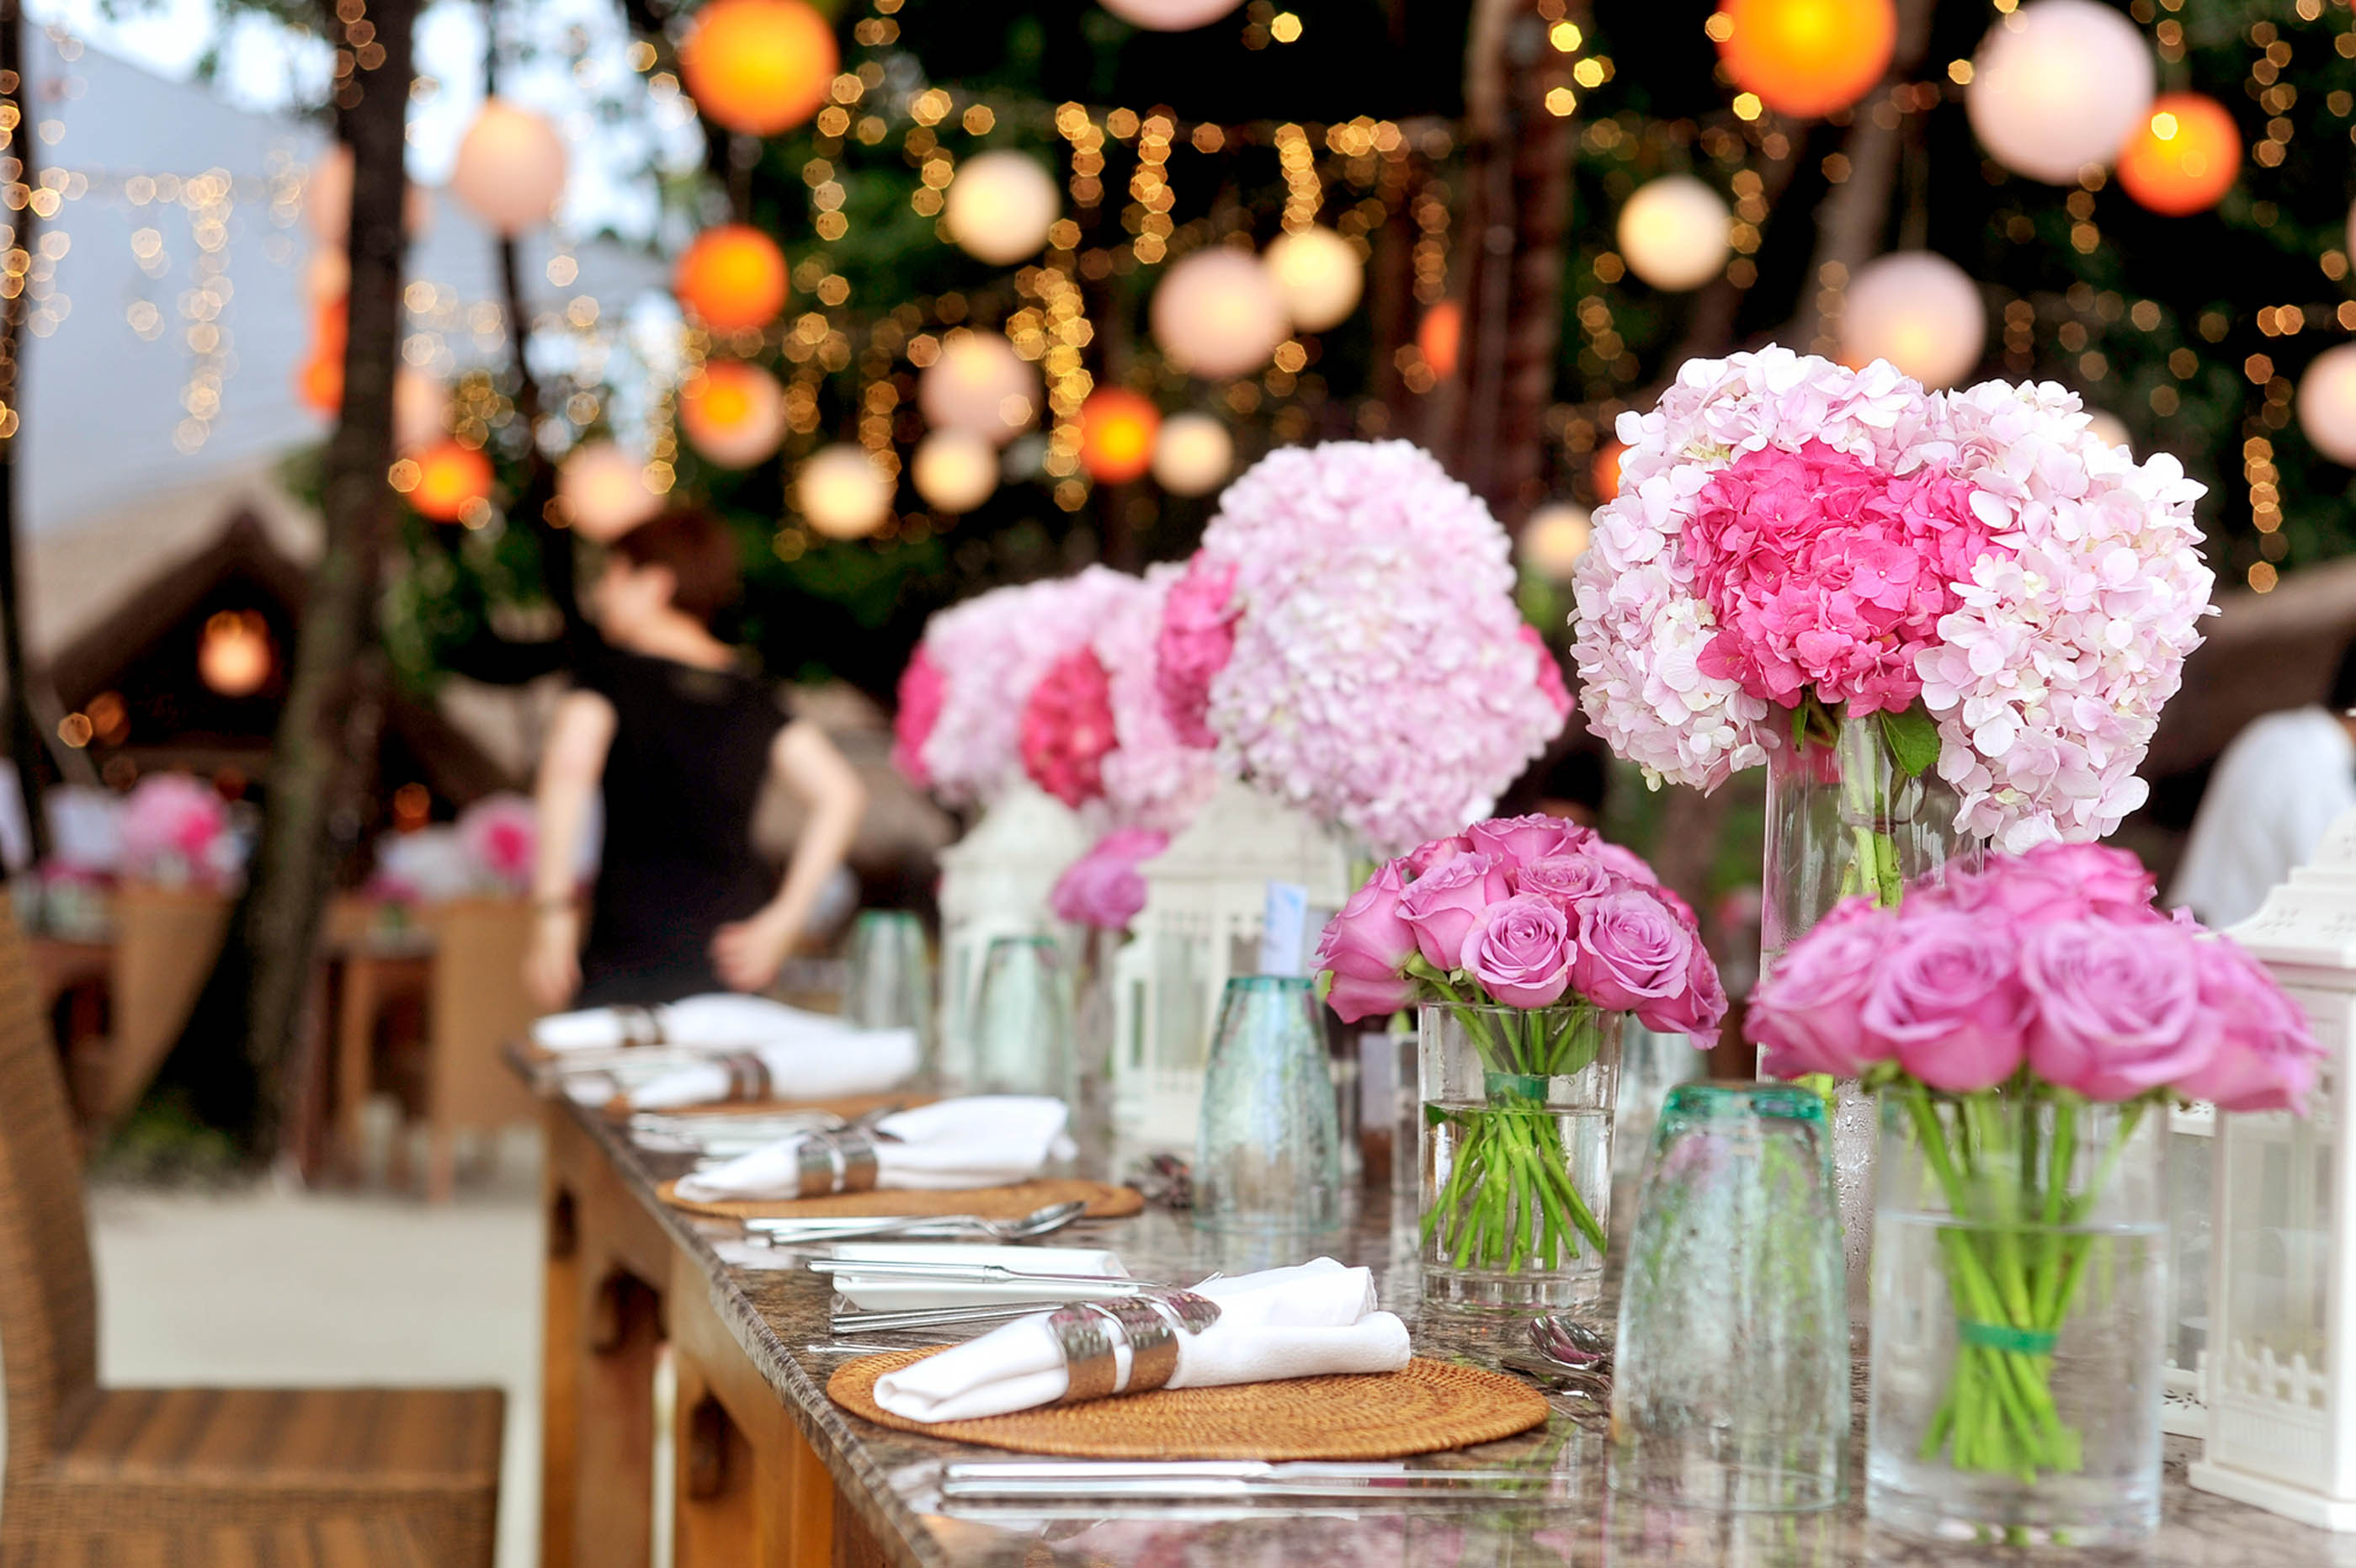 table-with-plates-and-flowers-filed-neat